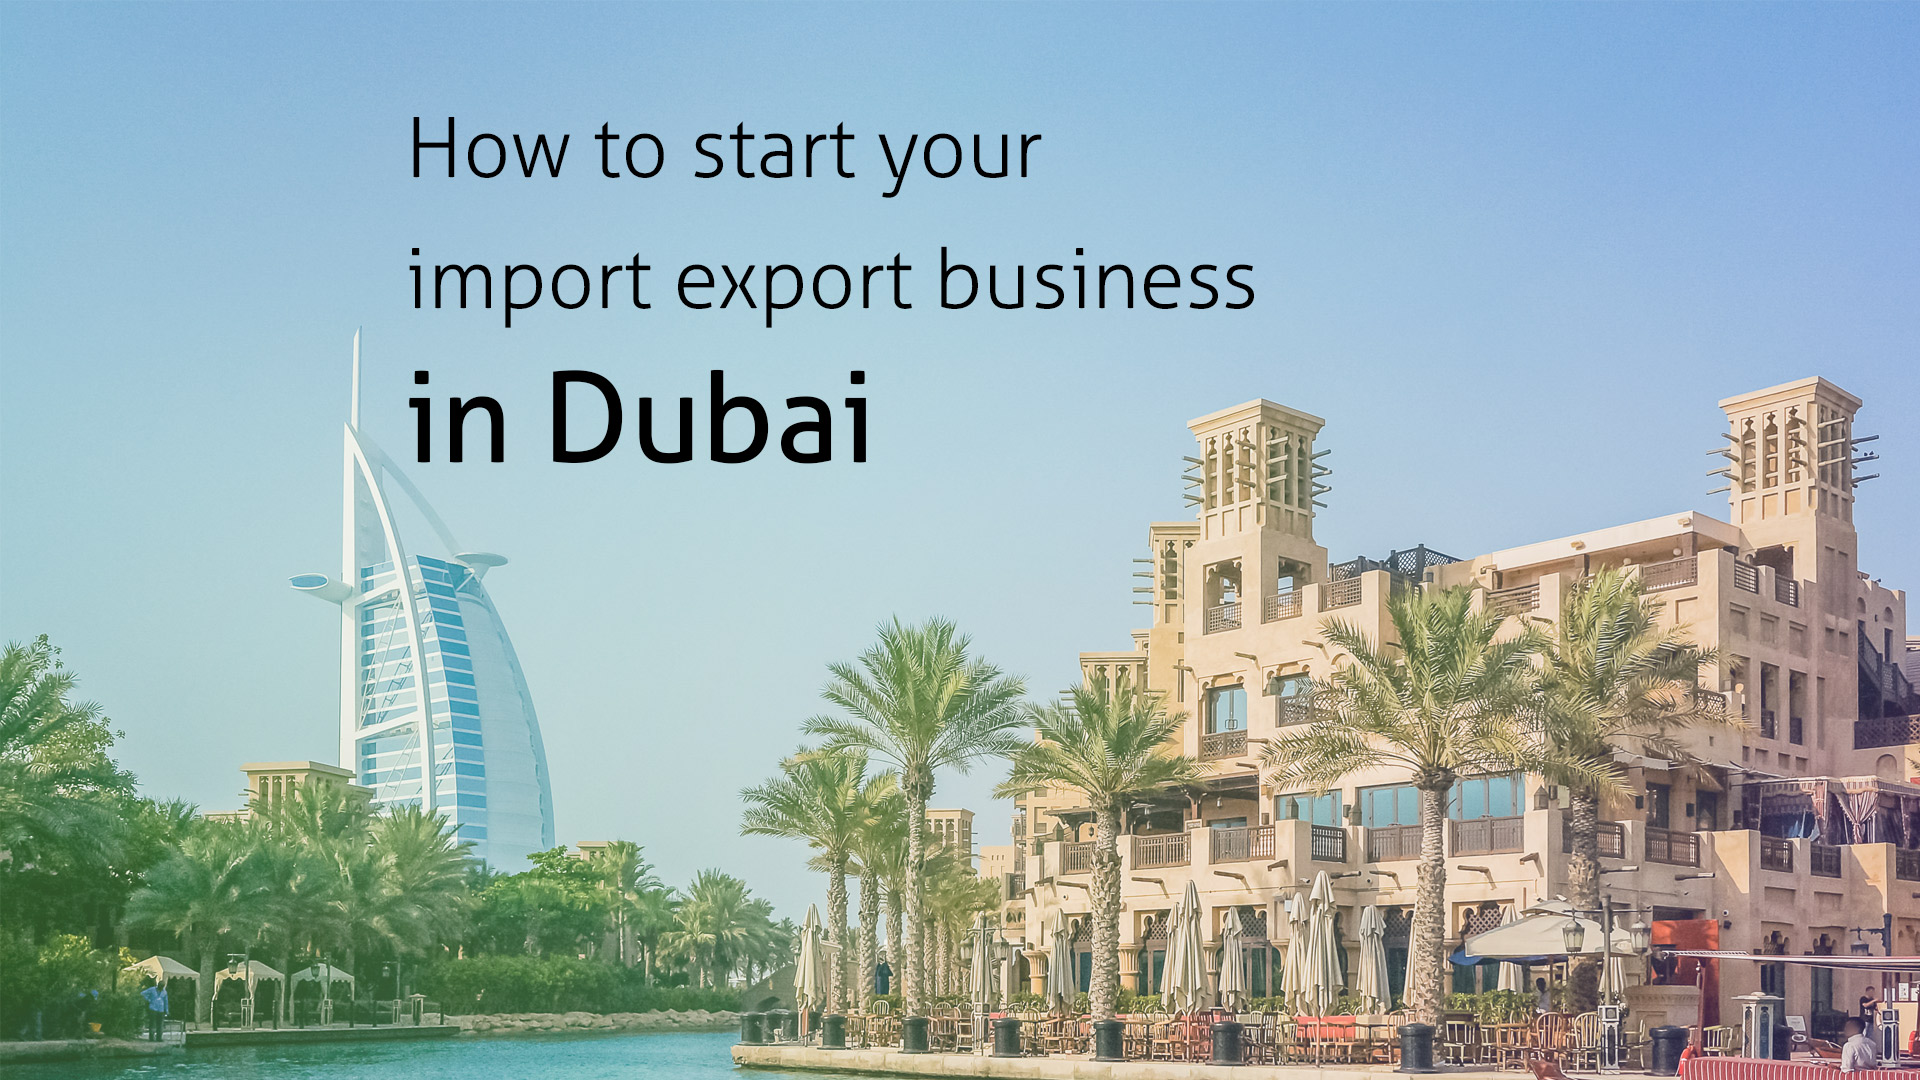 How to start your import export business in Dubai